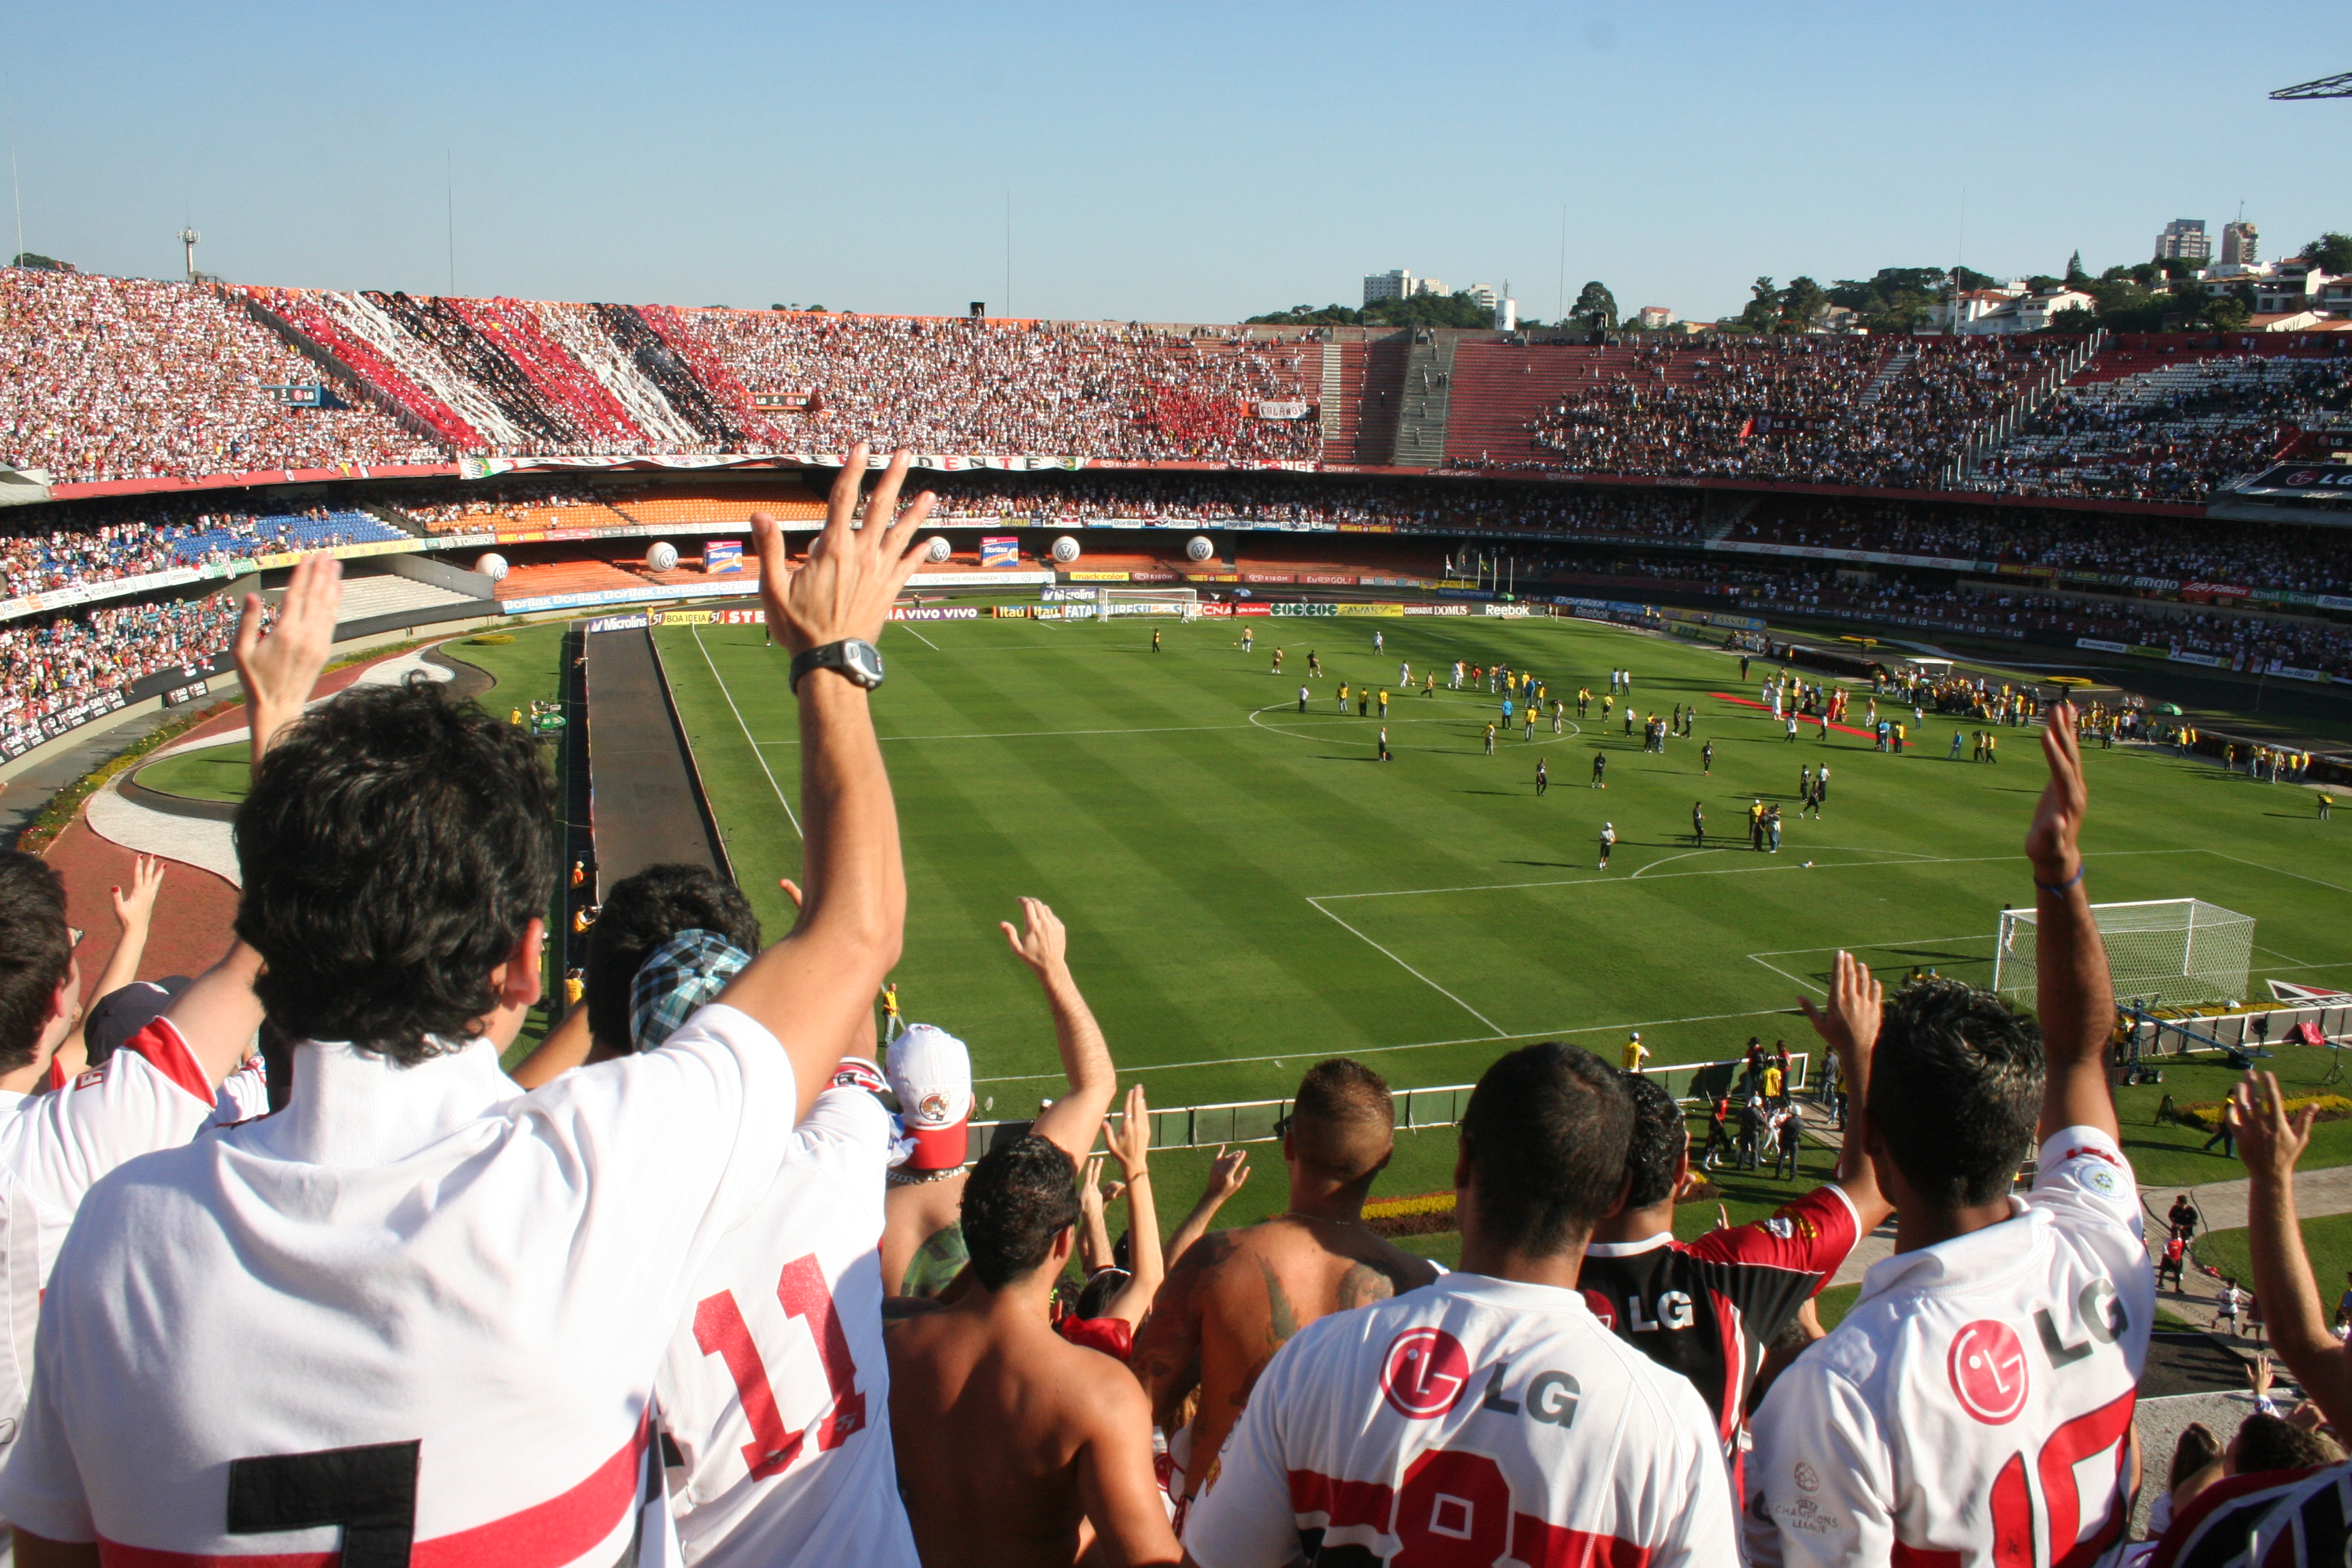 View of the São Paulo supporters during the second semifinal match of Paulista Championship of 2009 between São Paulo and Corinthians in Cícero Pompeu de Toledo stadium, known as Morumbi. One of the most important brazilian derbies. The game ended 0 to 2.